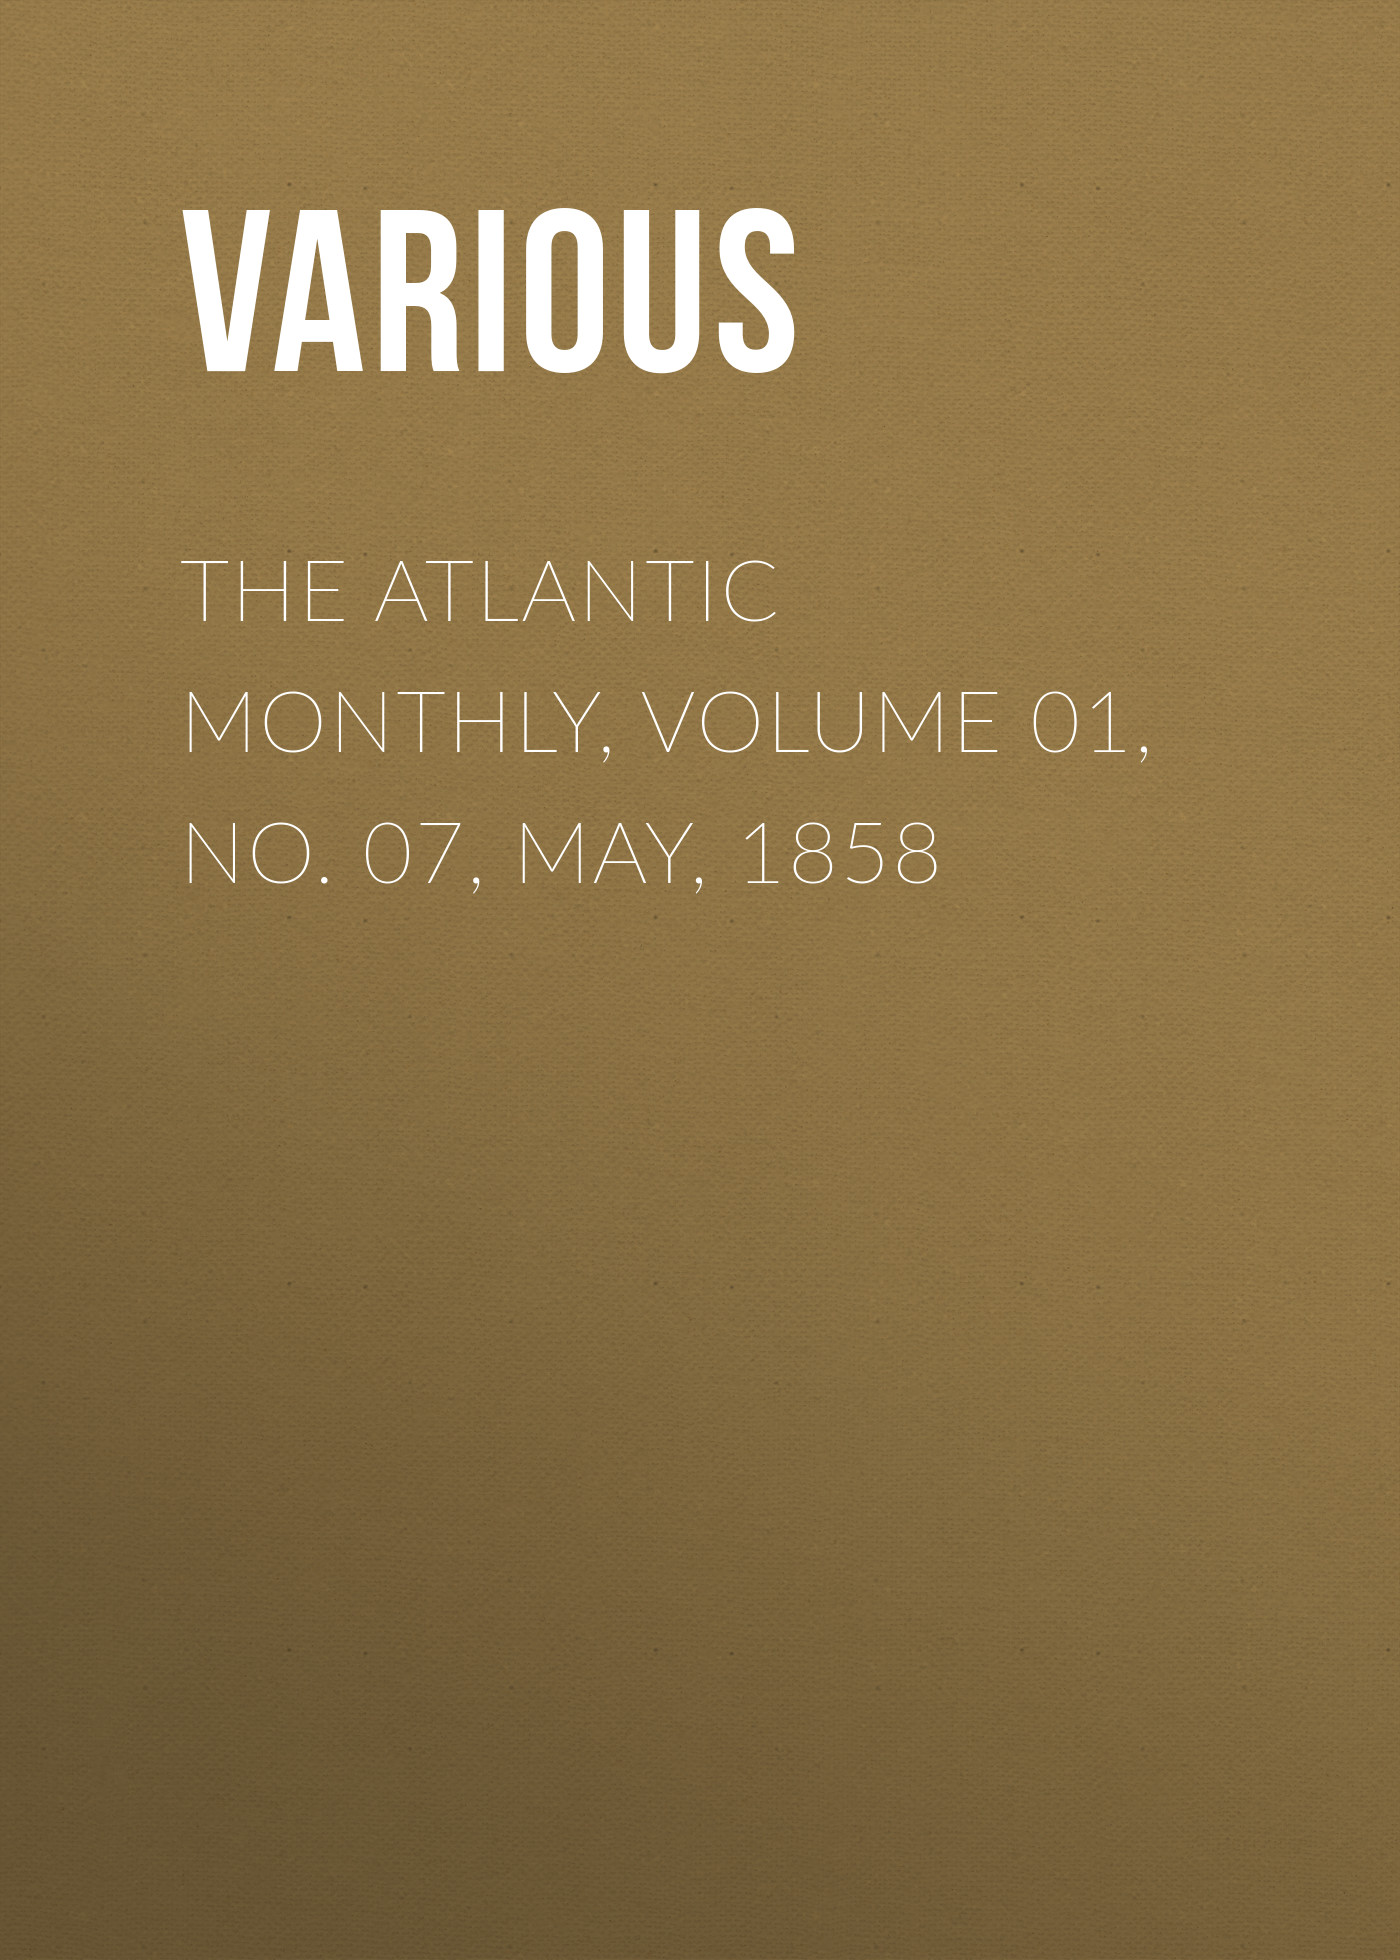 Various The Atlantic Monthly, Volume 01, No. 07, May, 1858 various the atlantic monthly volume 02 no 10 august 1858